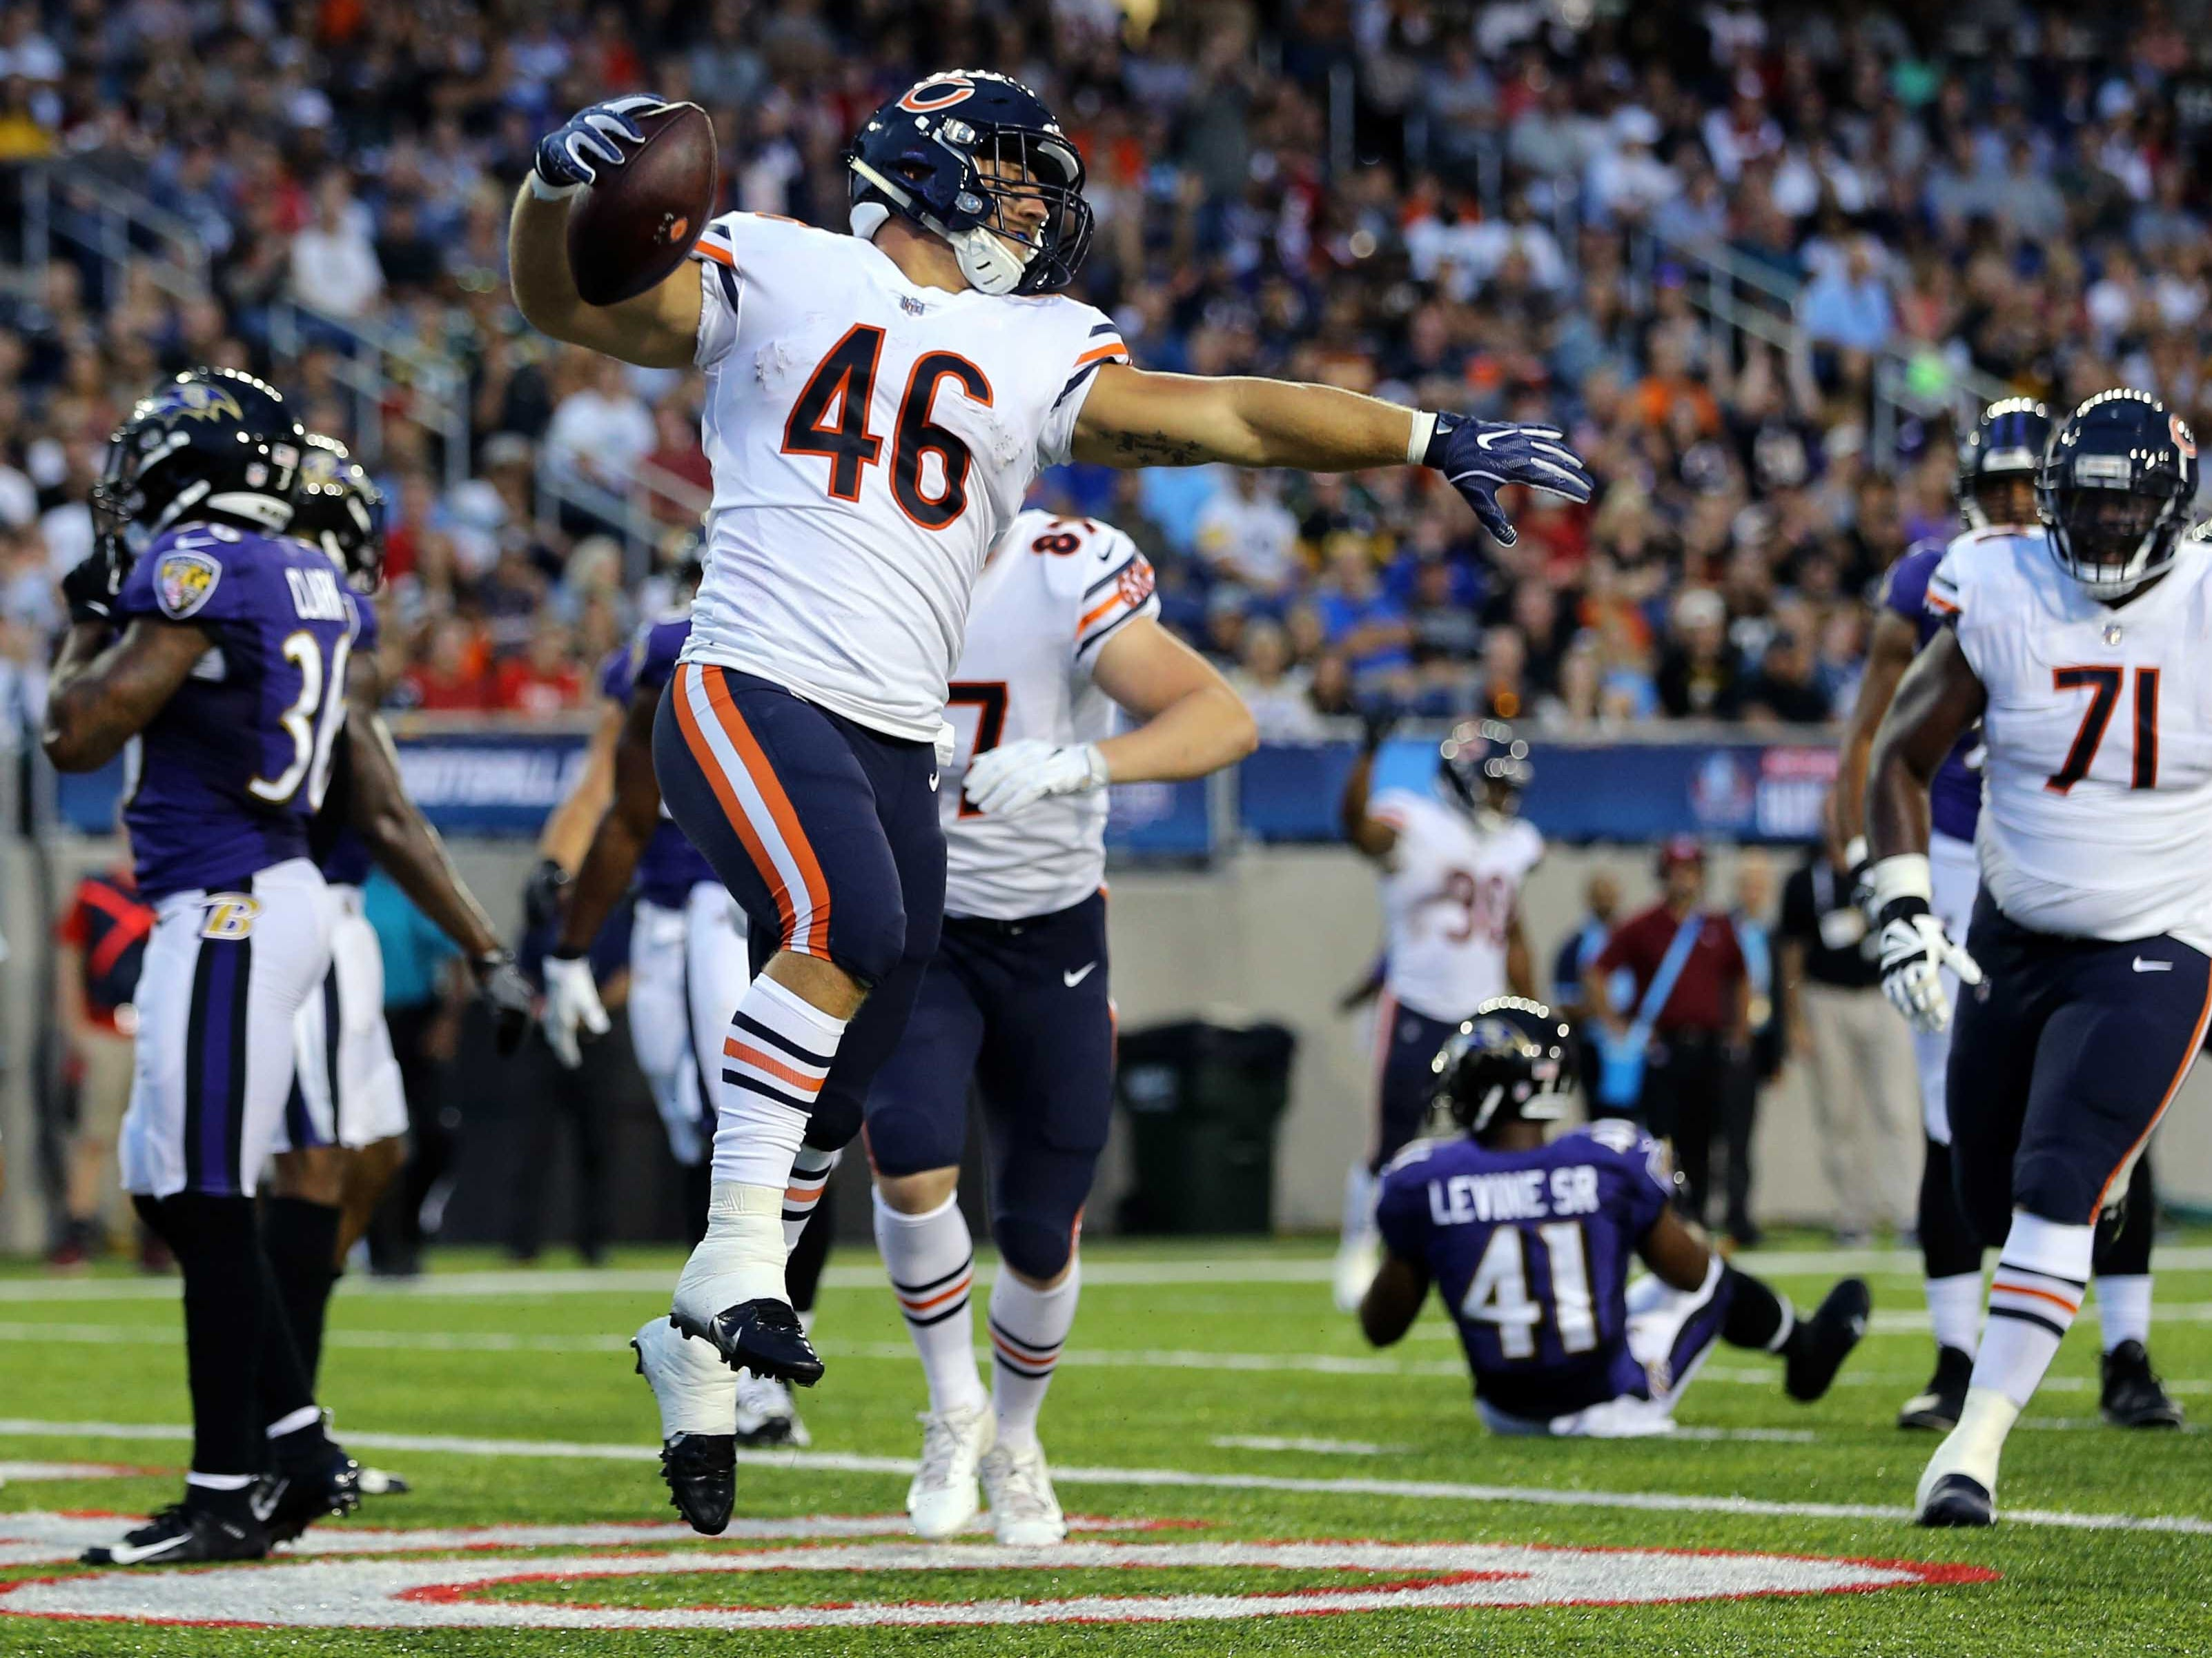 Chicago Bears fullback Michael Burton (46) reacts to scoring a touchdown against the Baltimore Ravens in the first half at Tom Benson Hall of Fame Stadium.